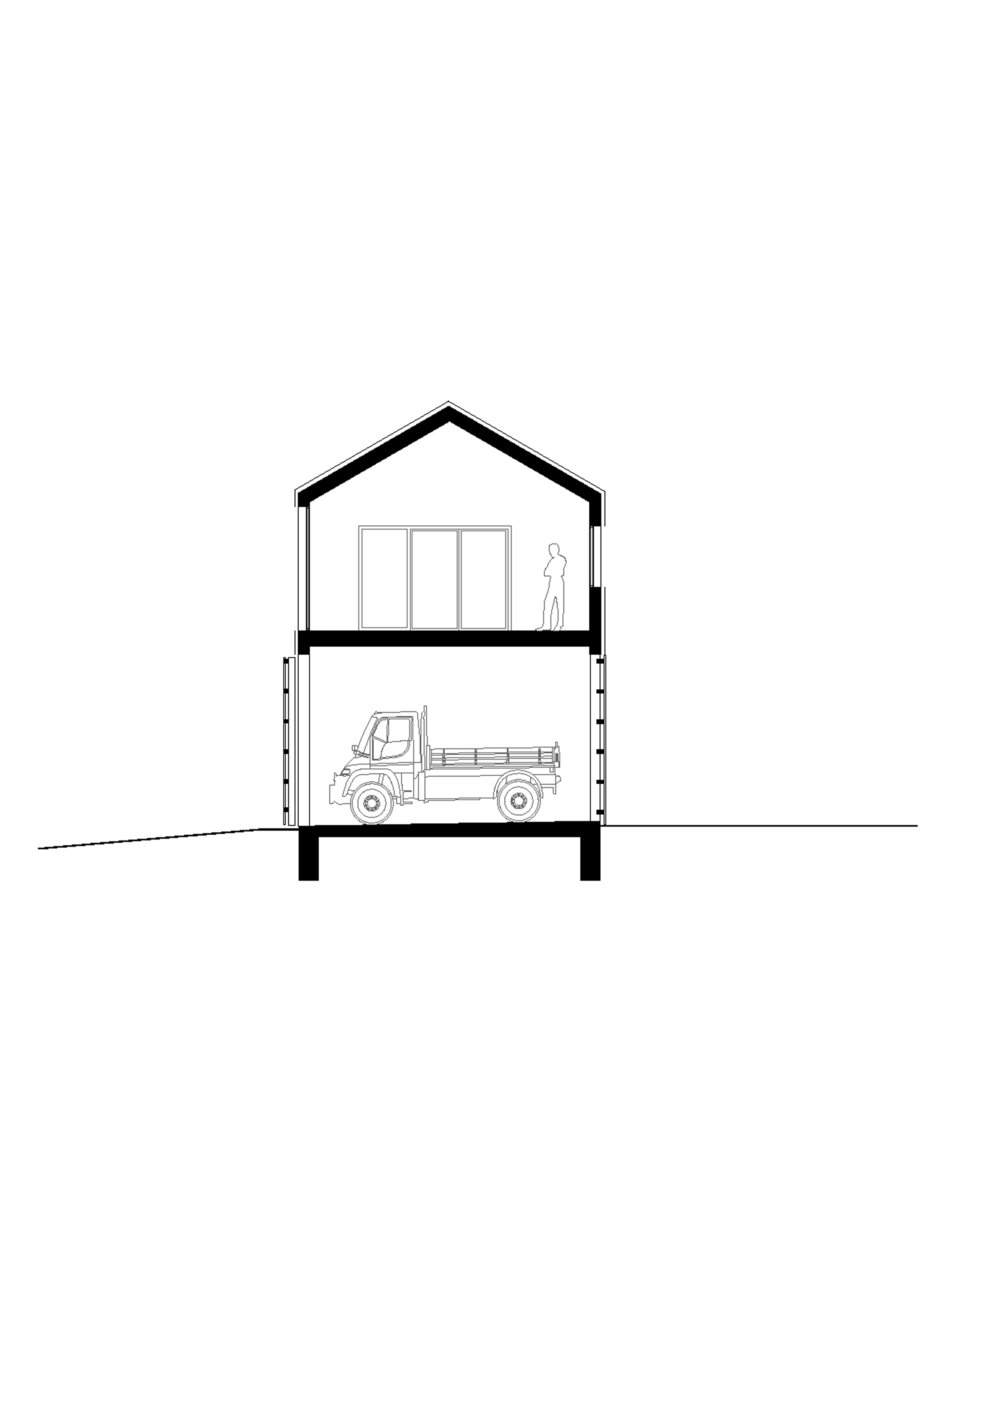 the-tree-mag_house-unimog-by-fabian-evers-architecture-wezel-architektur_180.png